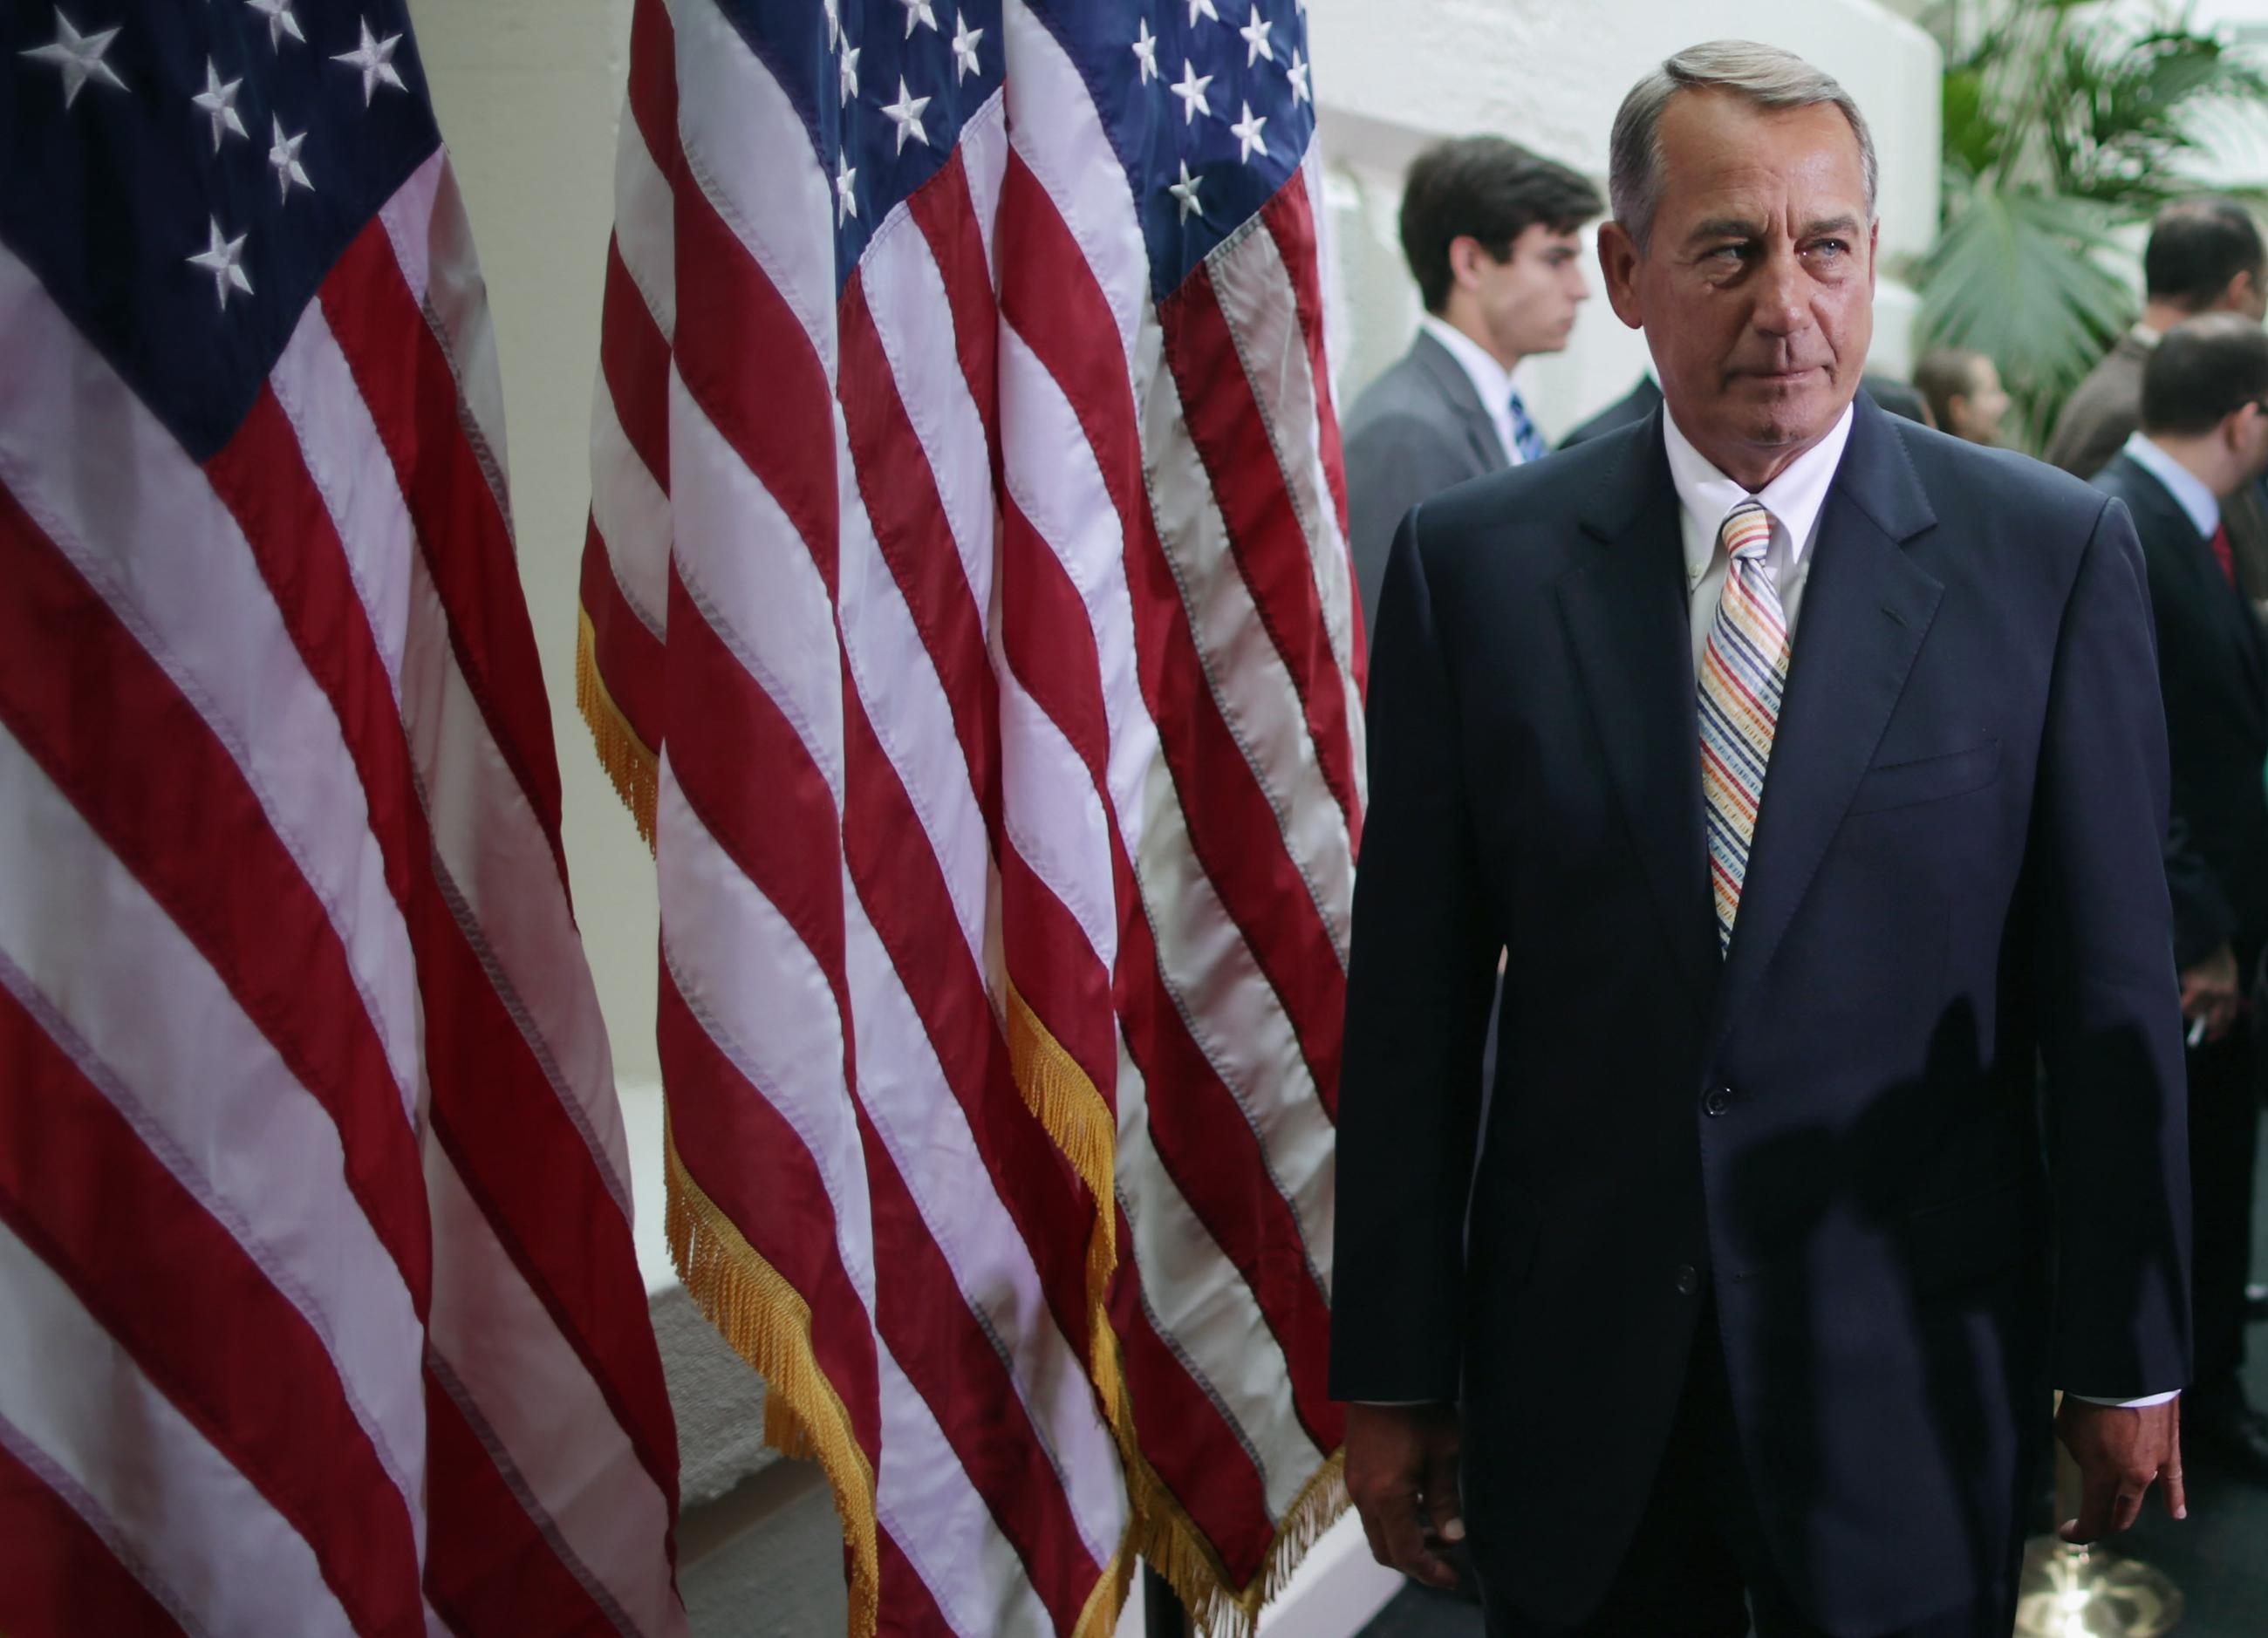 Boehner in Another GOP Quandary Over Border-Funding Request